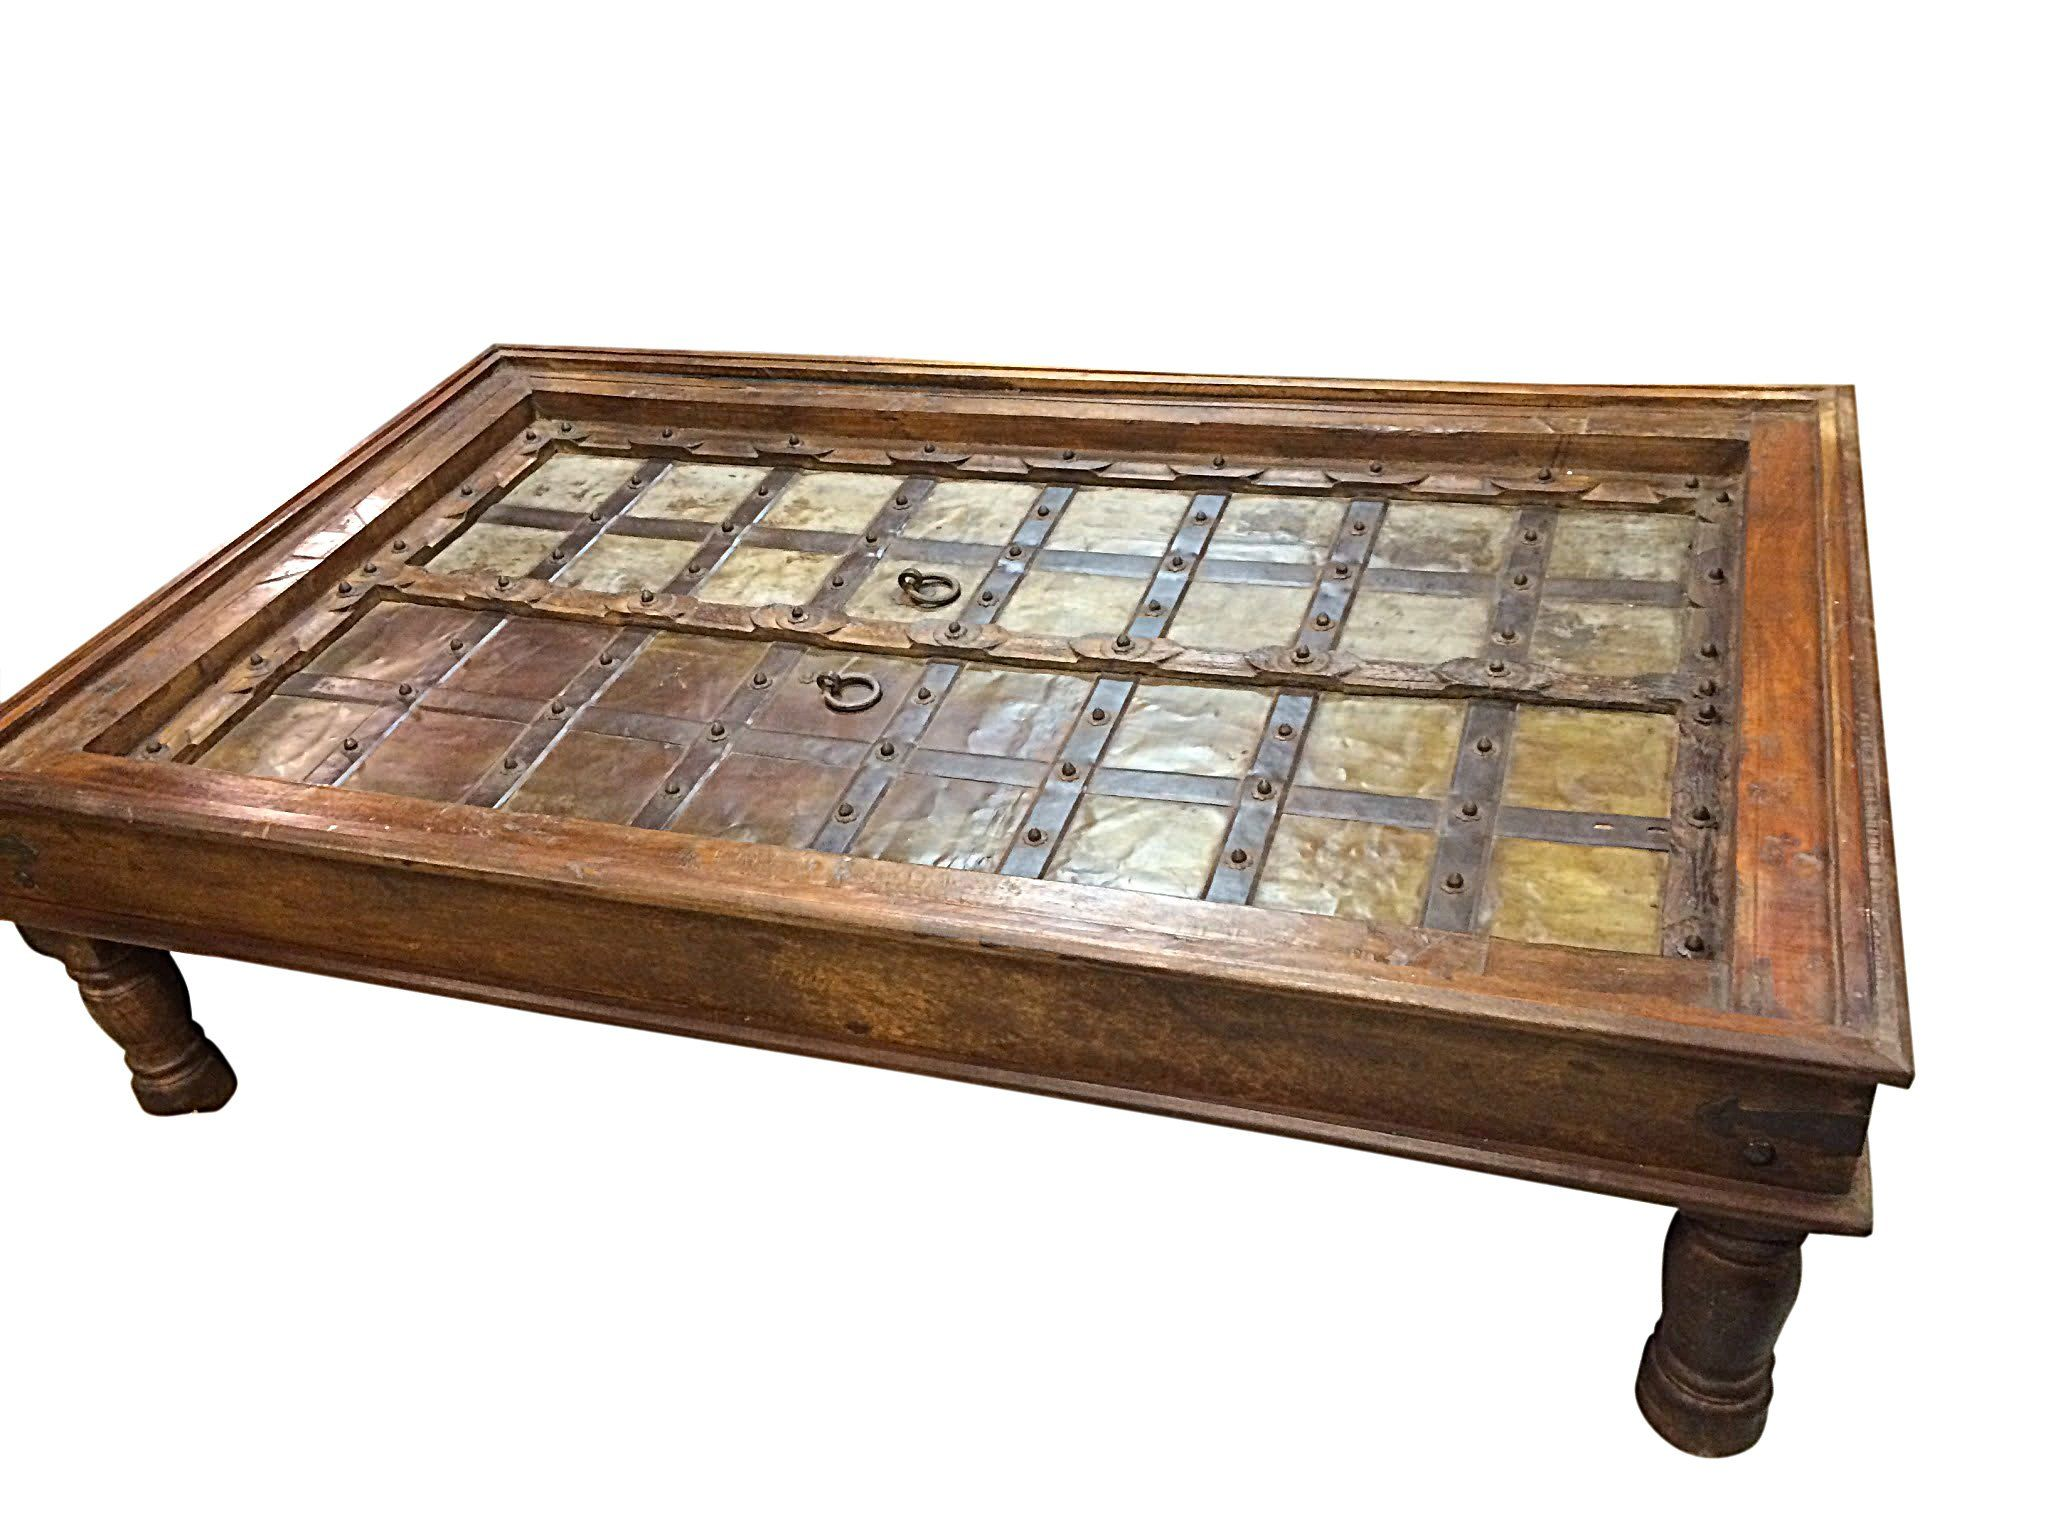 Antique coffee table indian furniture handmade wood carving antique coffee table indian furniture handmade wood carving mughal indian style table vintage patinas geotapseo Gallery